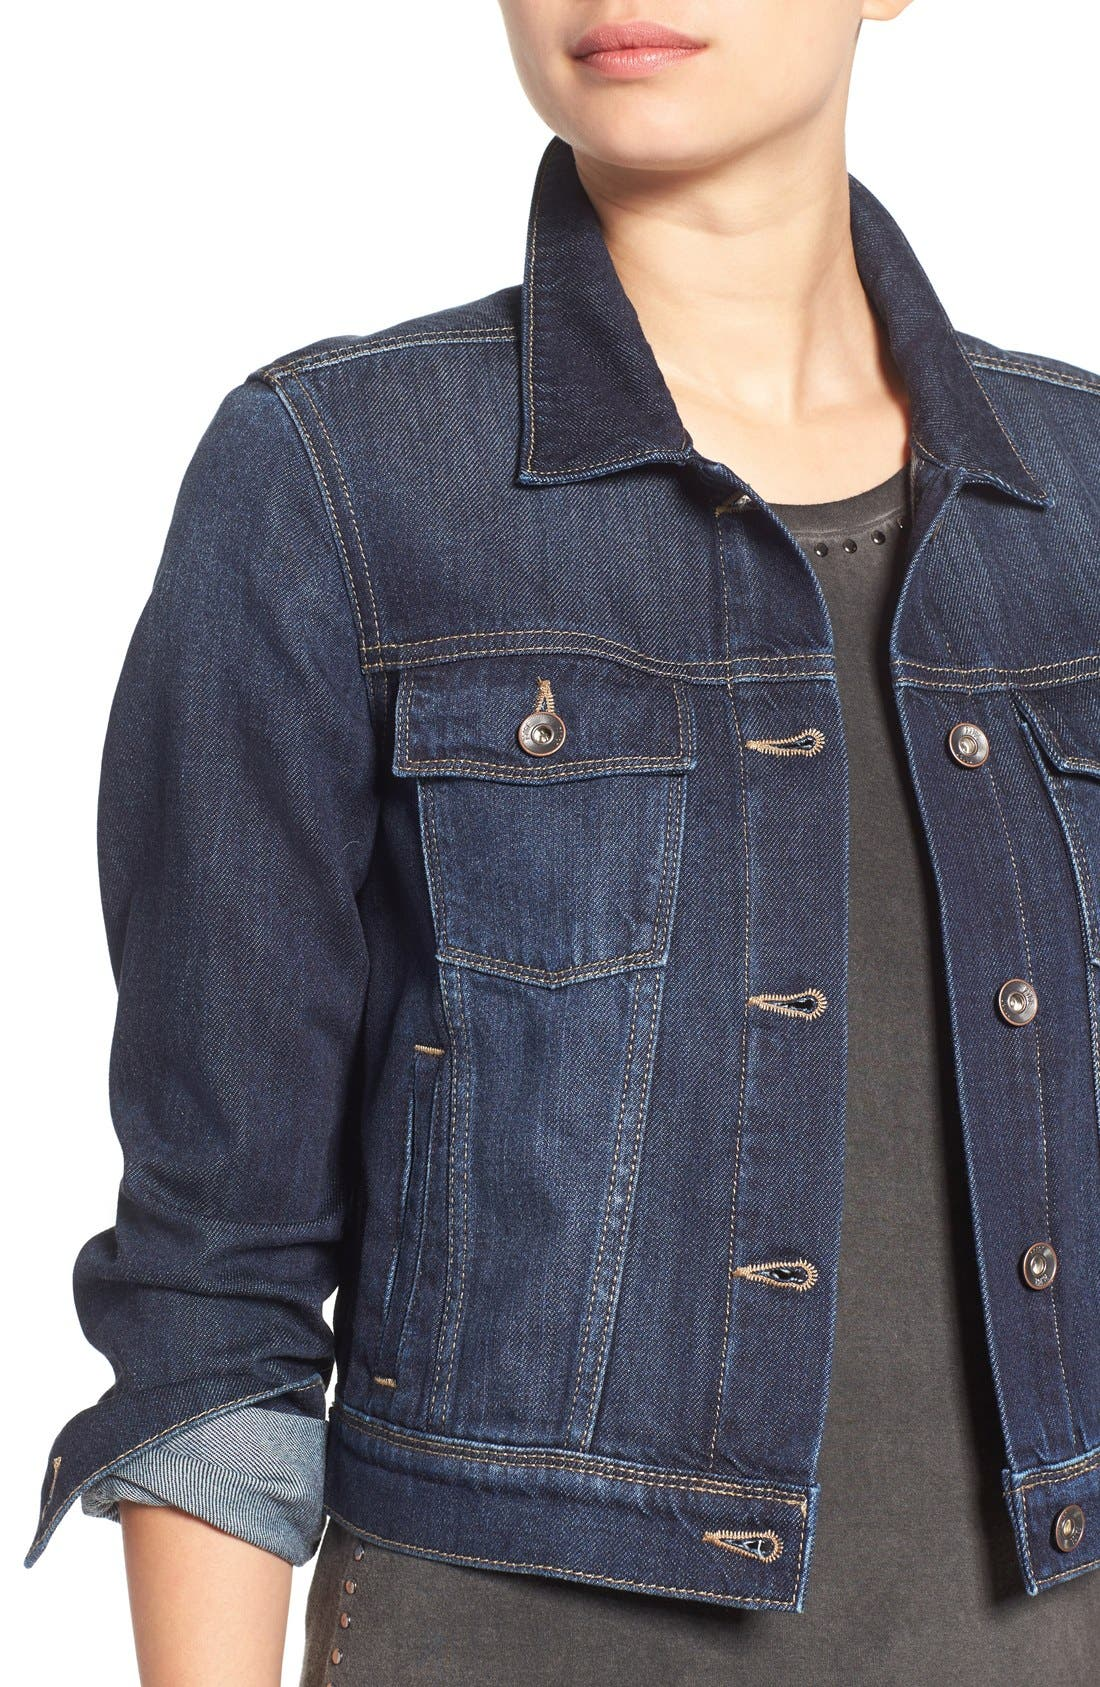 'Vivienne' Denim Jacket,                             Alternate thumbnail 4, color,                             400